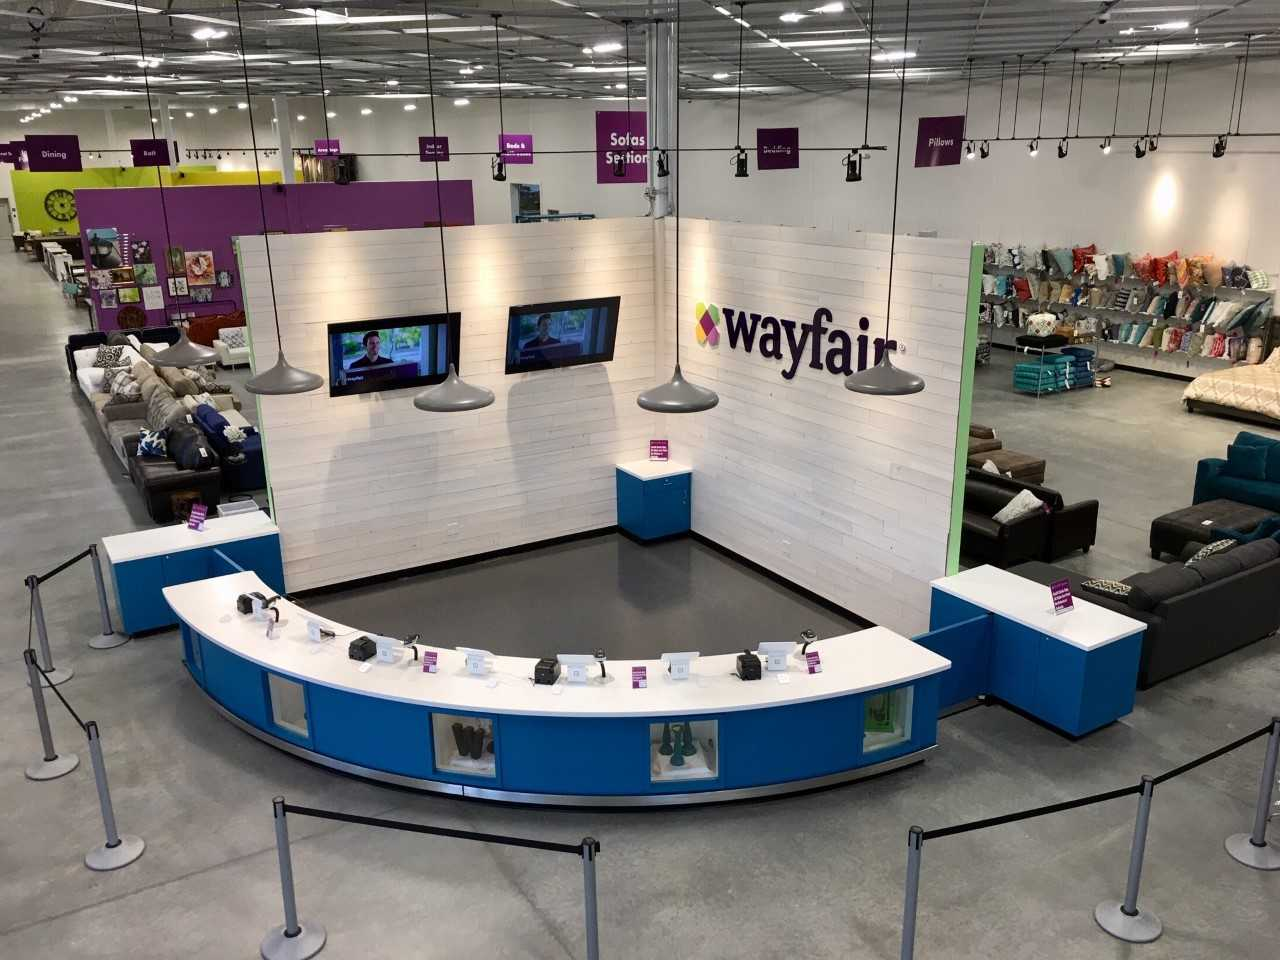 Merveilleux Wayfair Is Opening An Outlet Store At 5101 Renegade Way In Florence. Its  Soft Opening